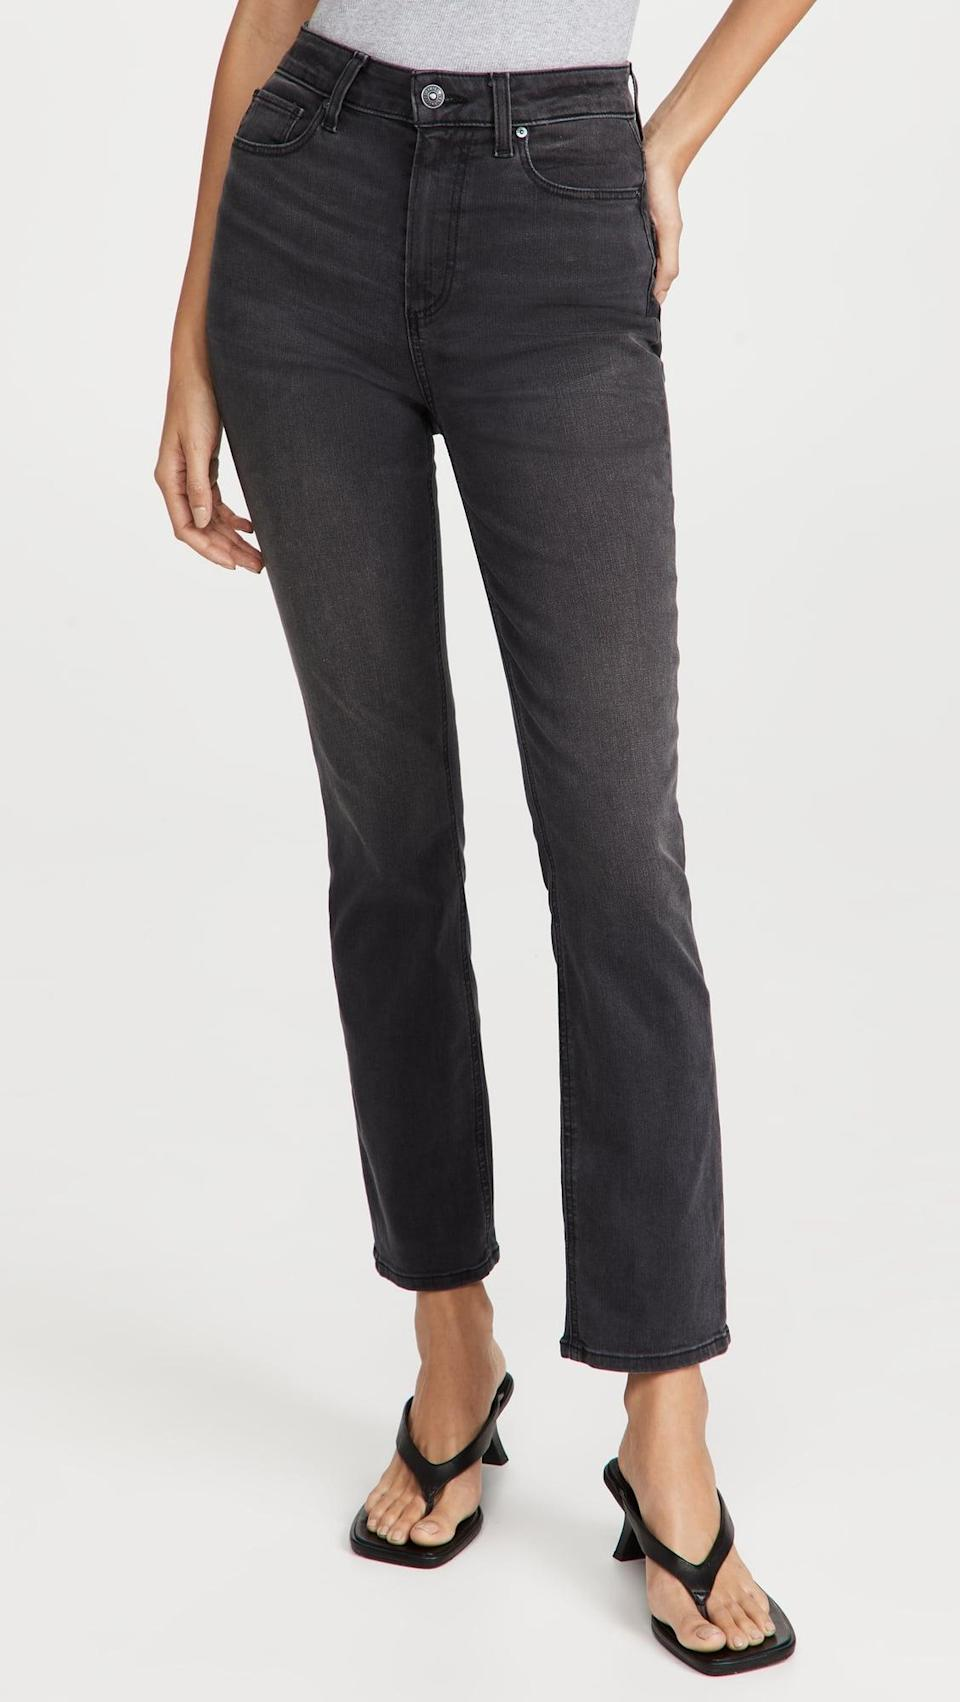 <p>These versatile <span>PAIGE Flaunt Denim Accent Jeans</span> ($225) would look great on a night out. Pair them with heels and a silky top and you're ready to go.</p>